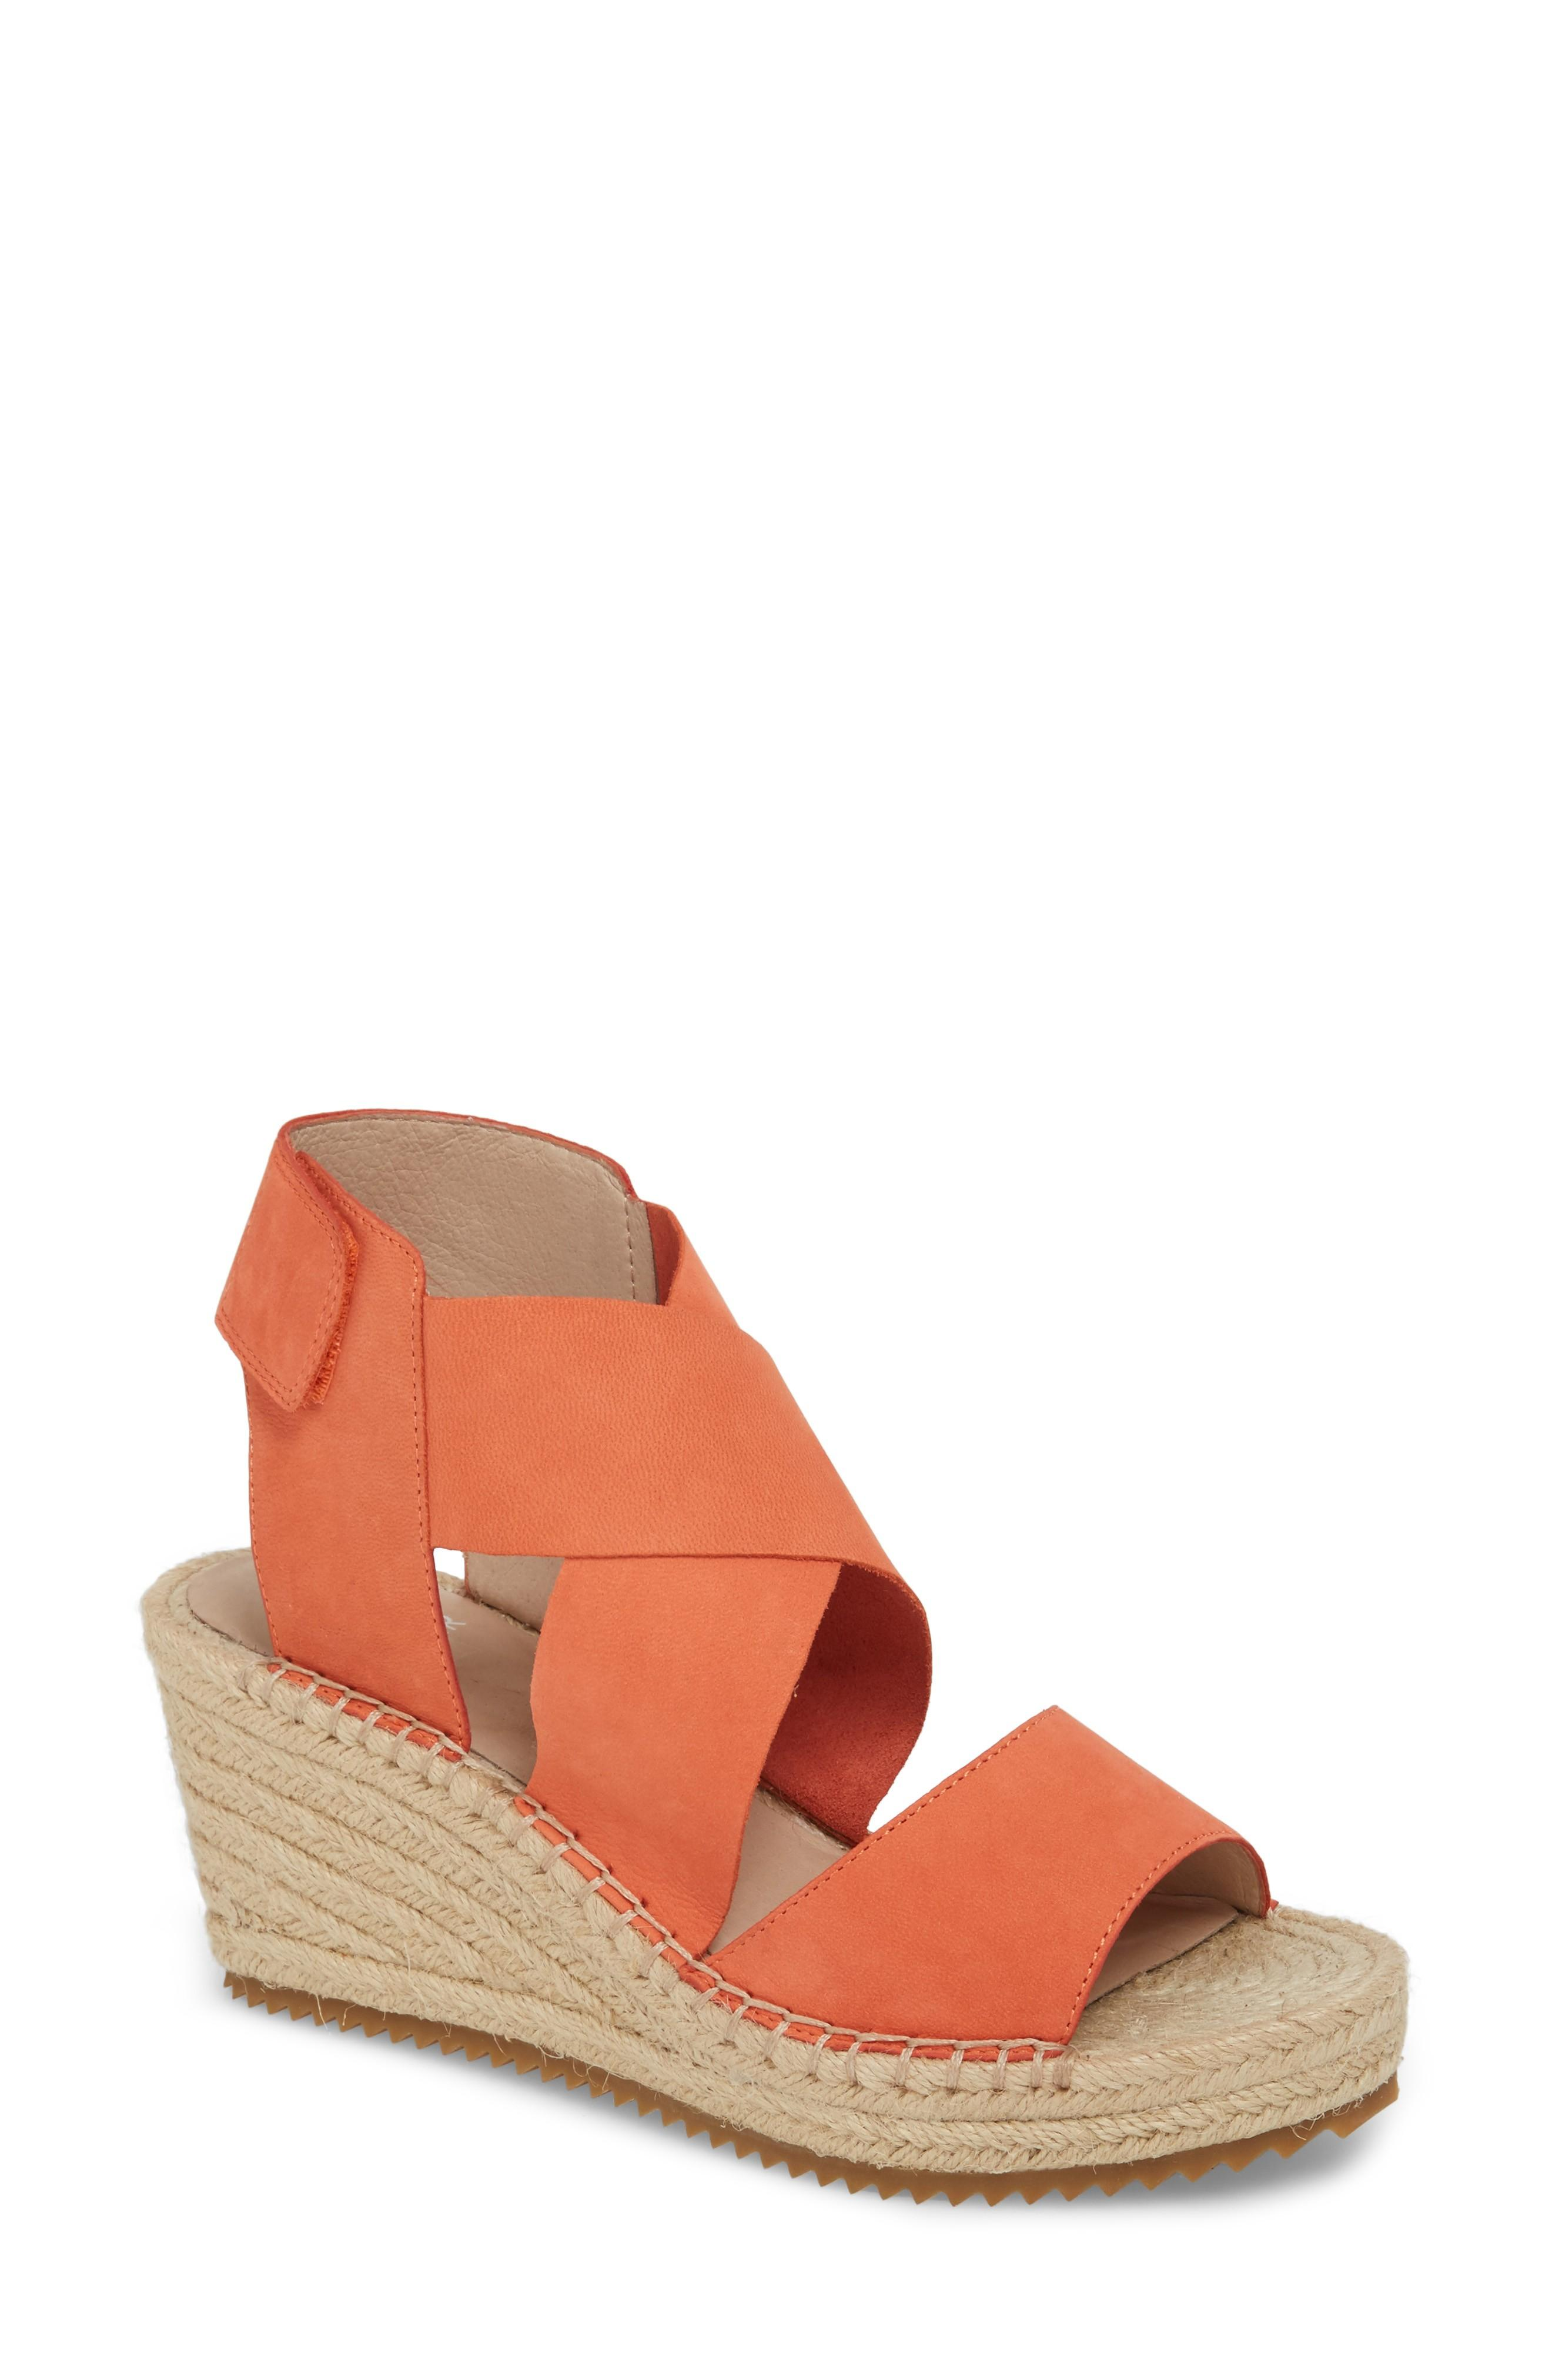 cee33401236 'Willow' Espadrille Wedge Sandal in Persimmon Leather